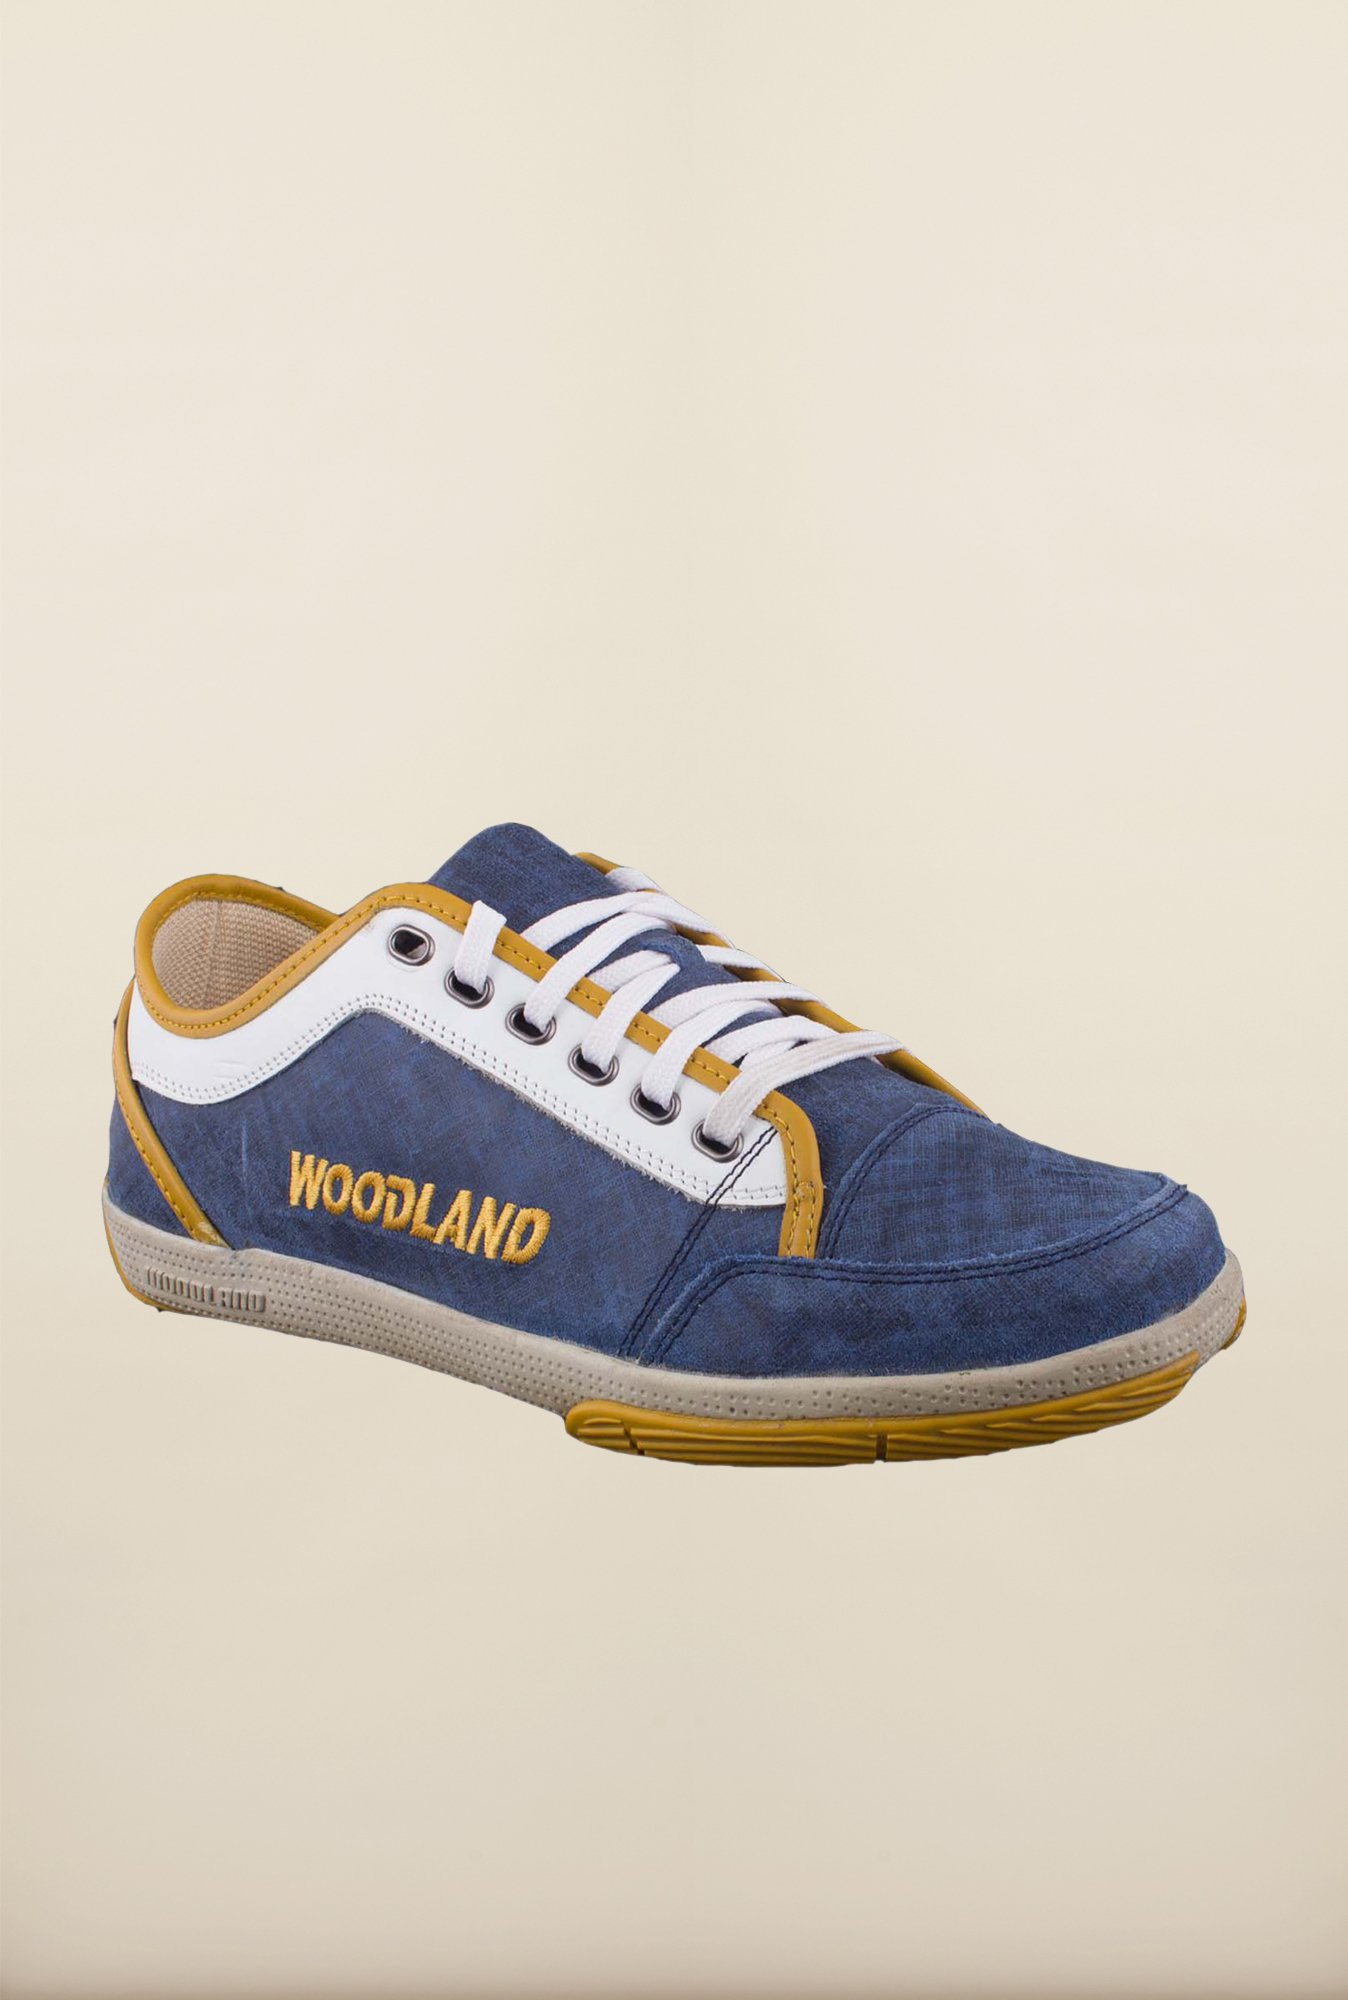 Woodland Blue Sneakers